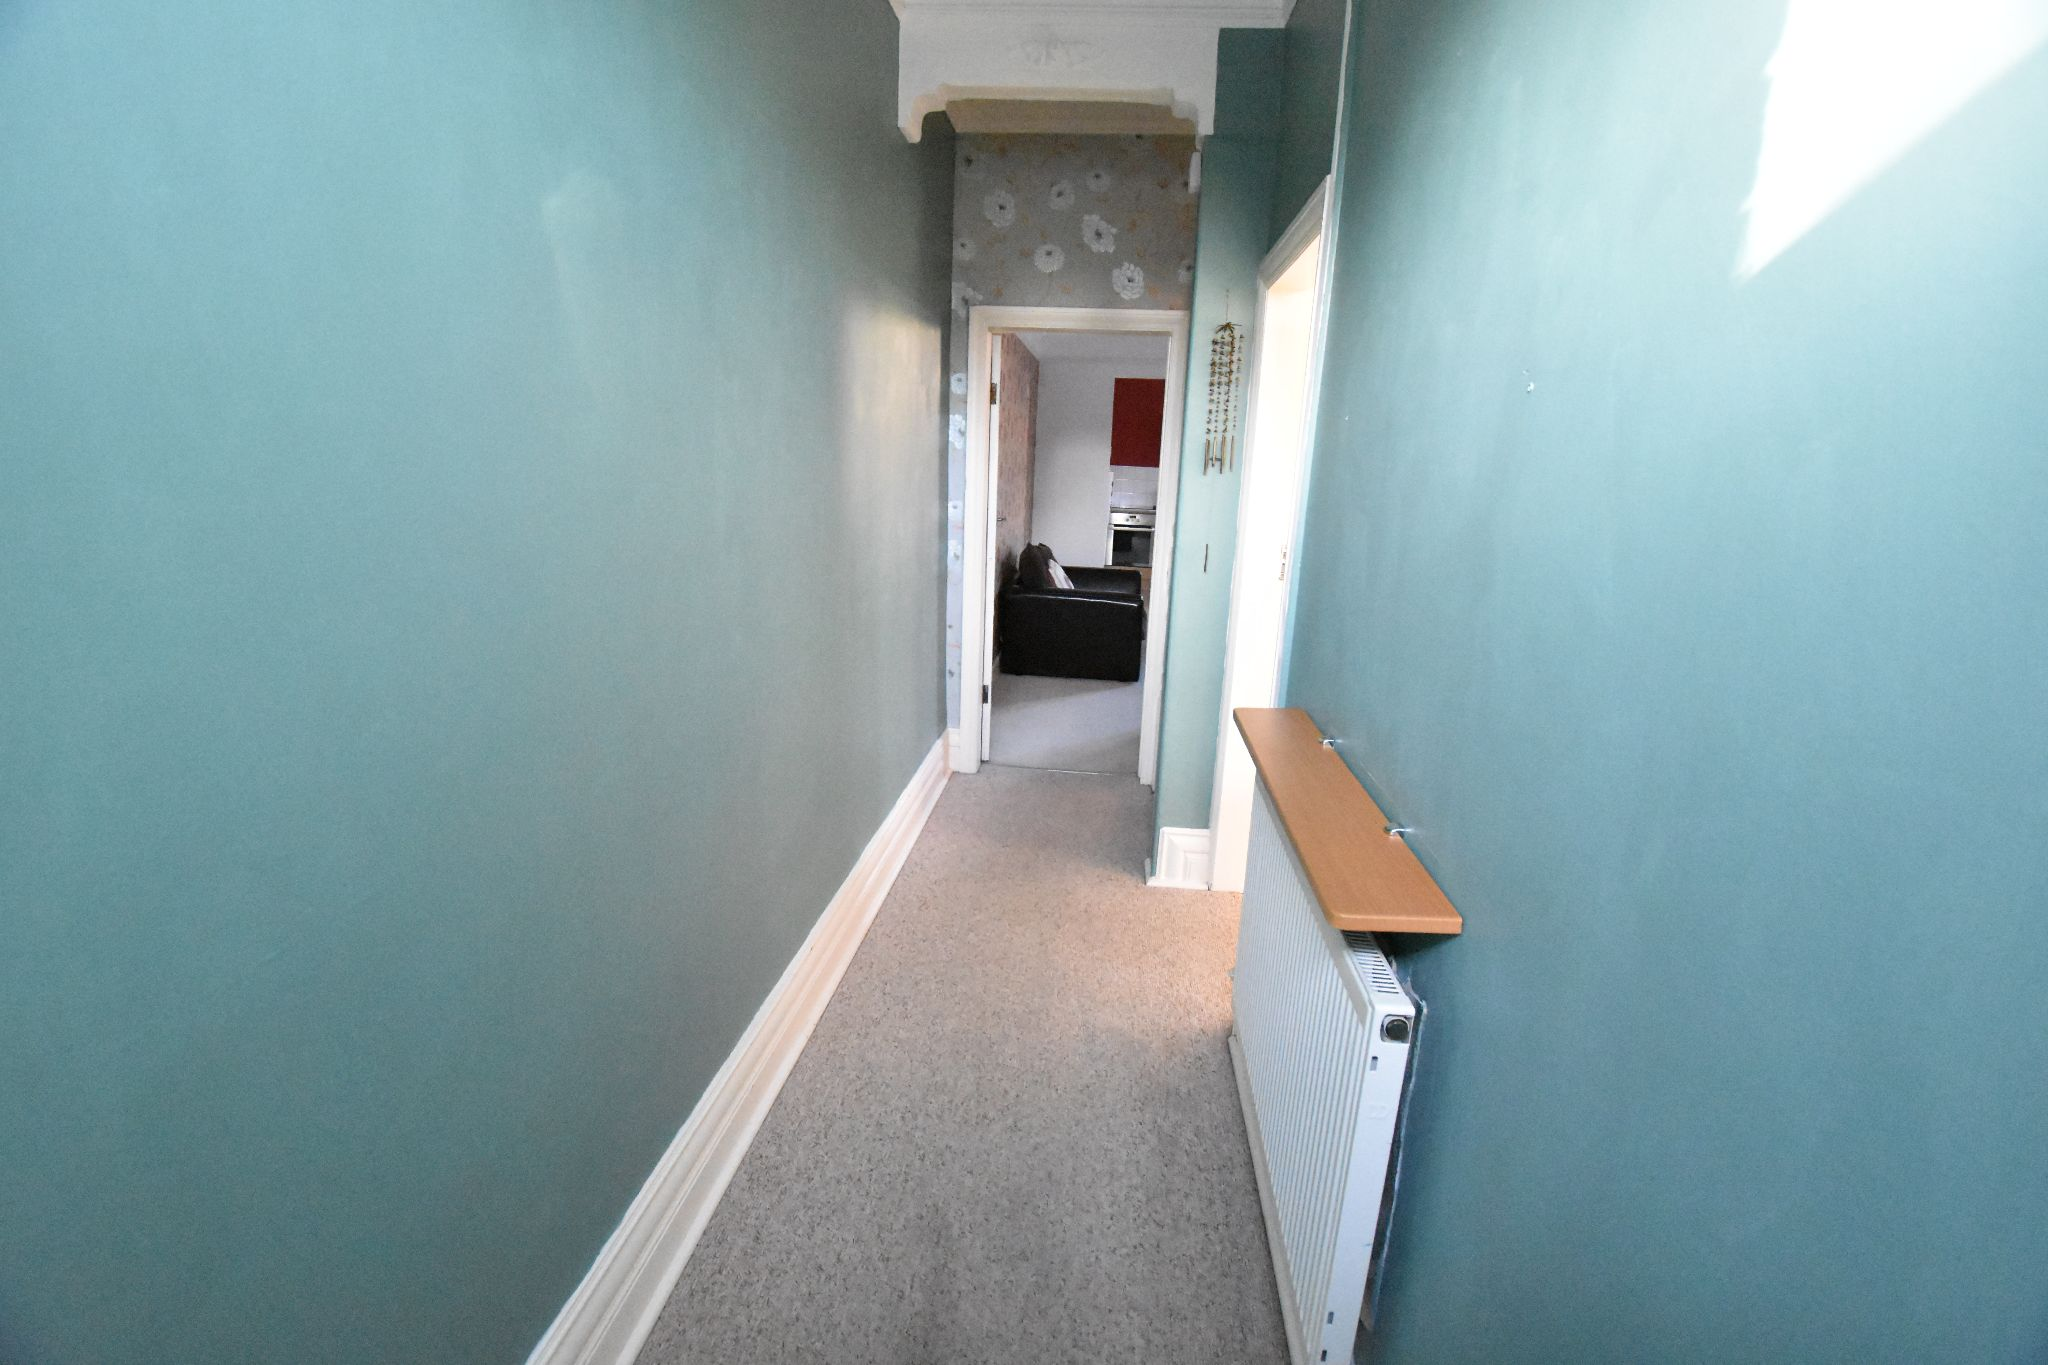 3 bedroom semi-detached house Sold STC in Preston - Entrance hall